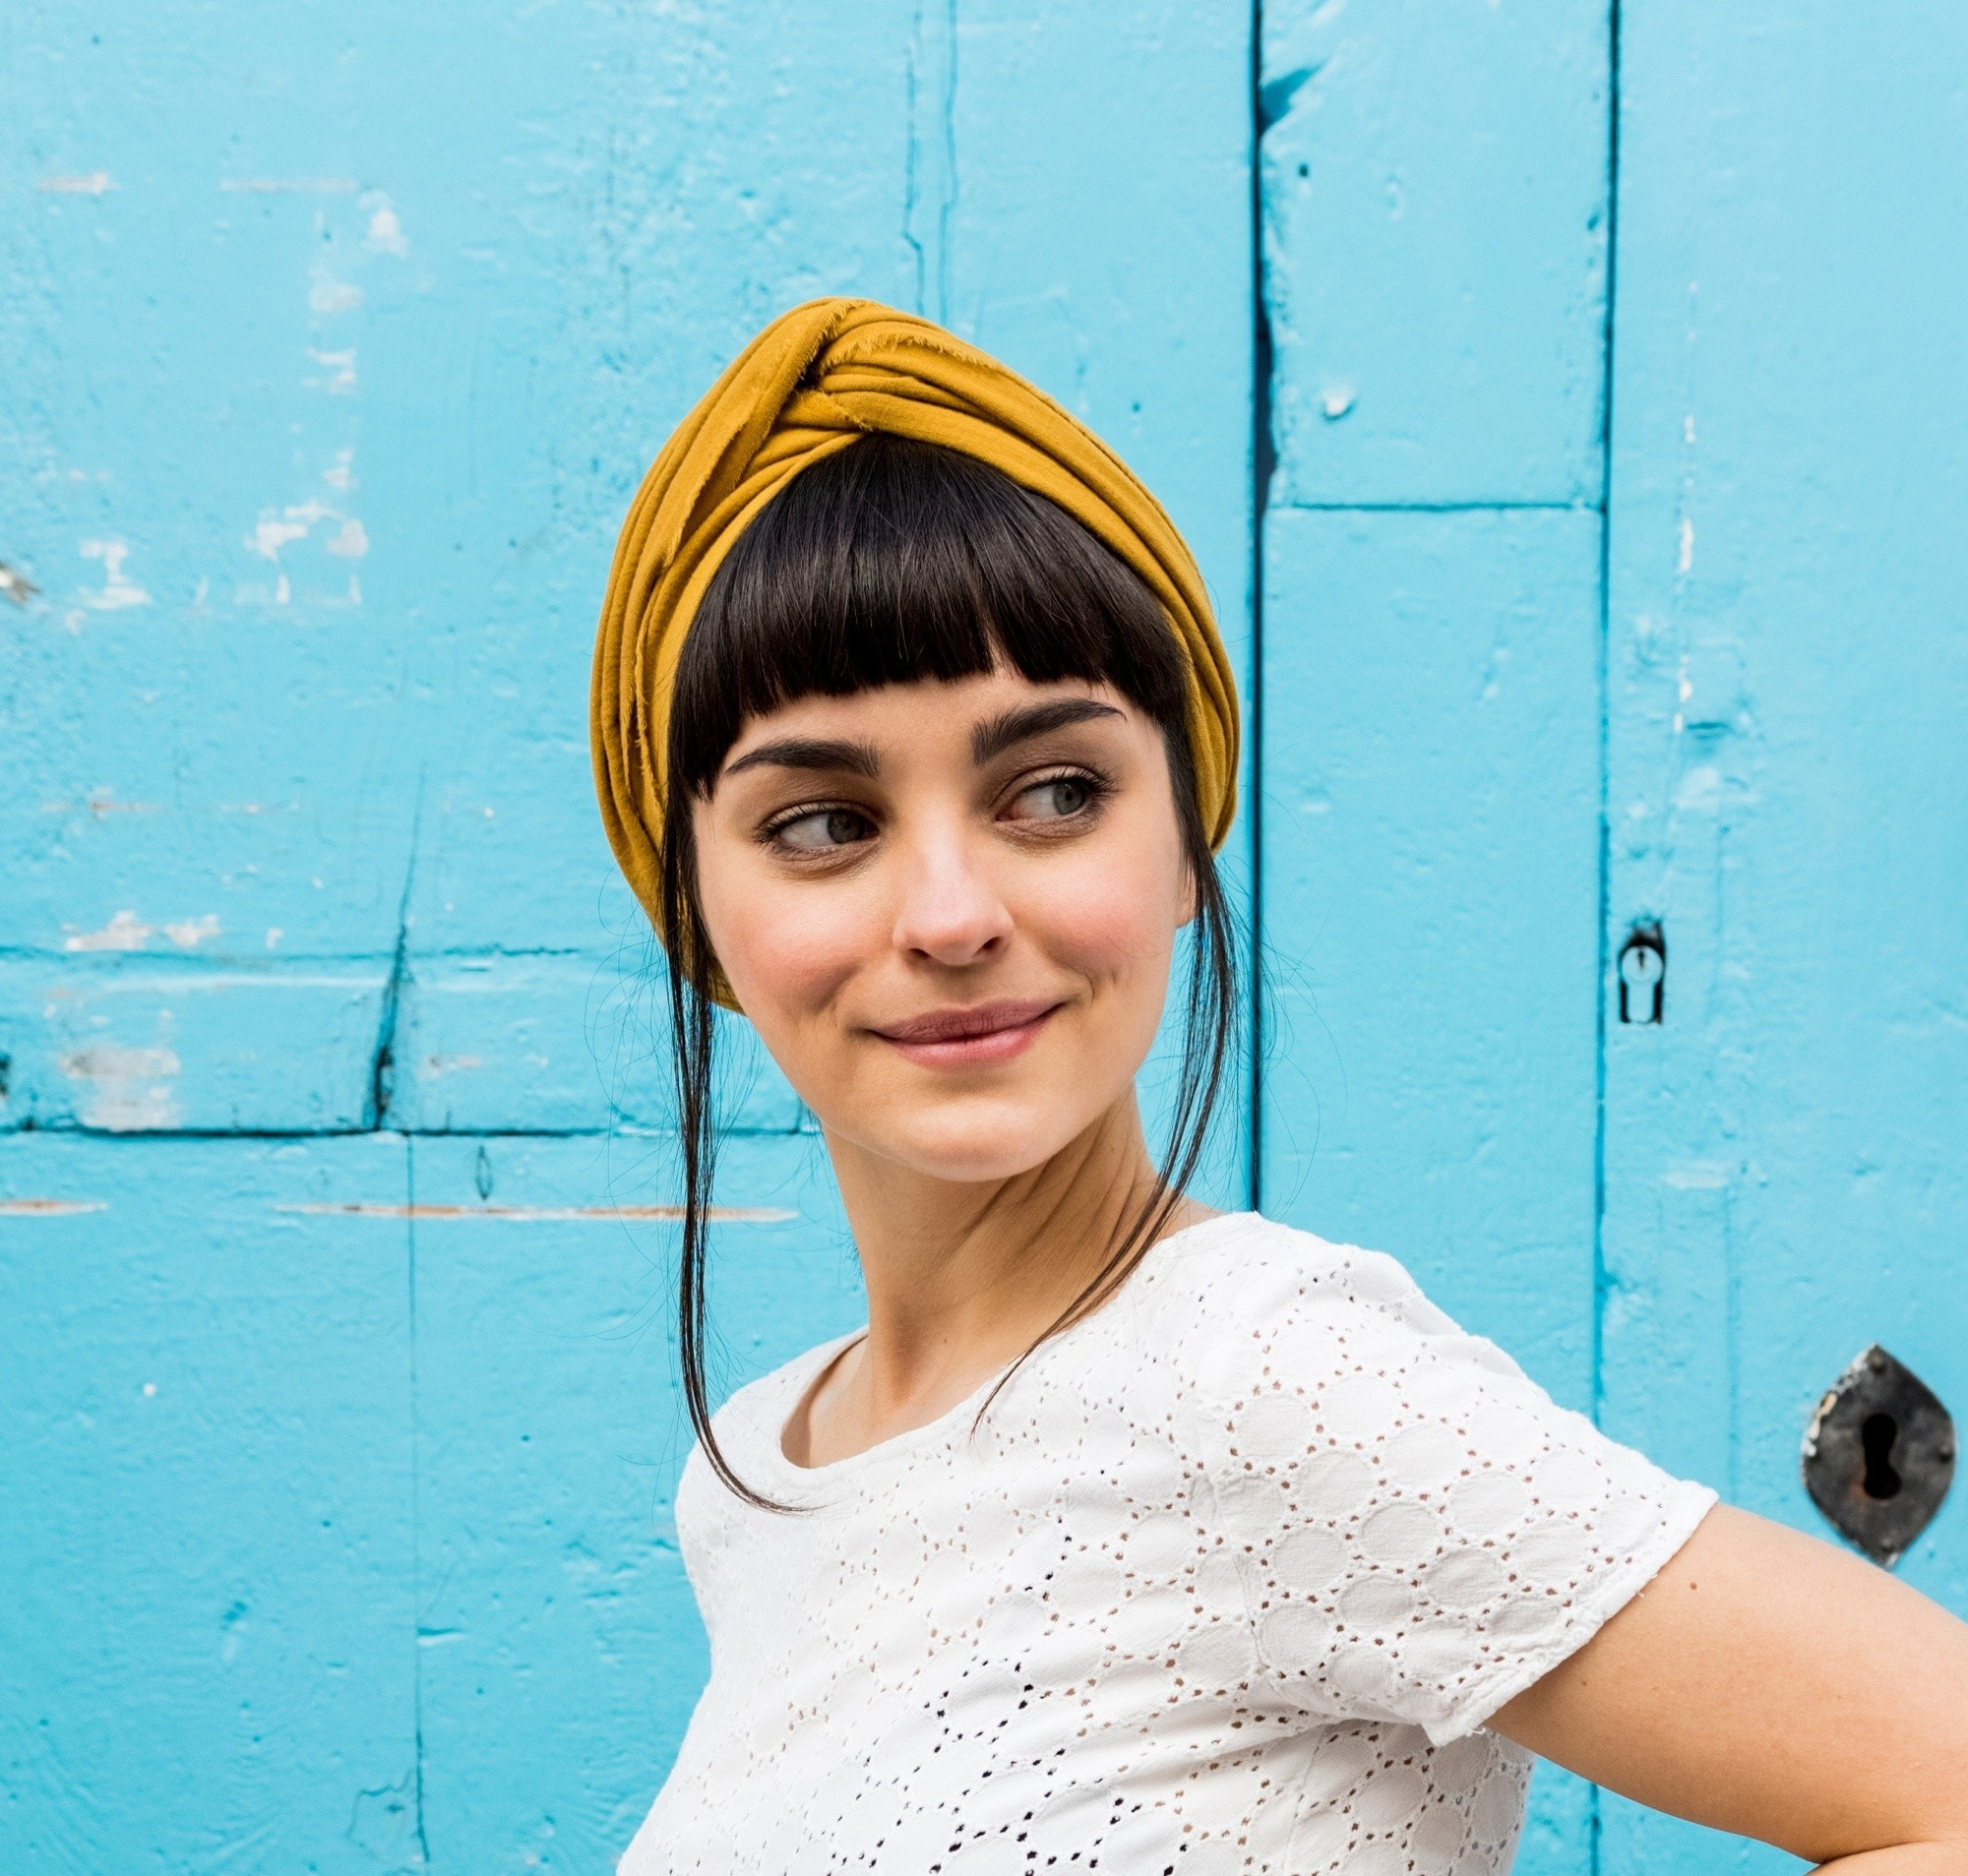 Styling blunt bangs: Closeup shot of a woman with black hair and blunt bangs wearing a mustard-colored headband